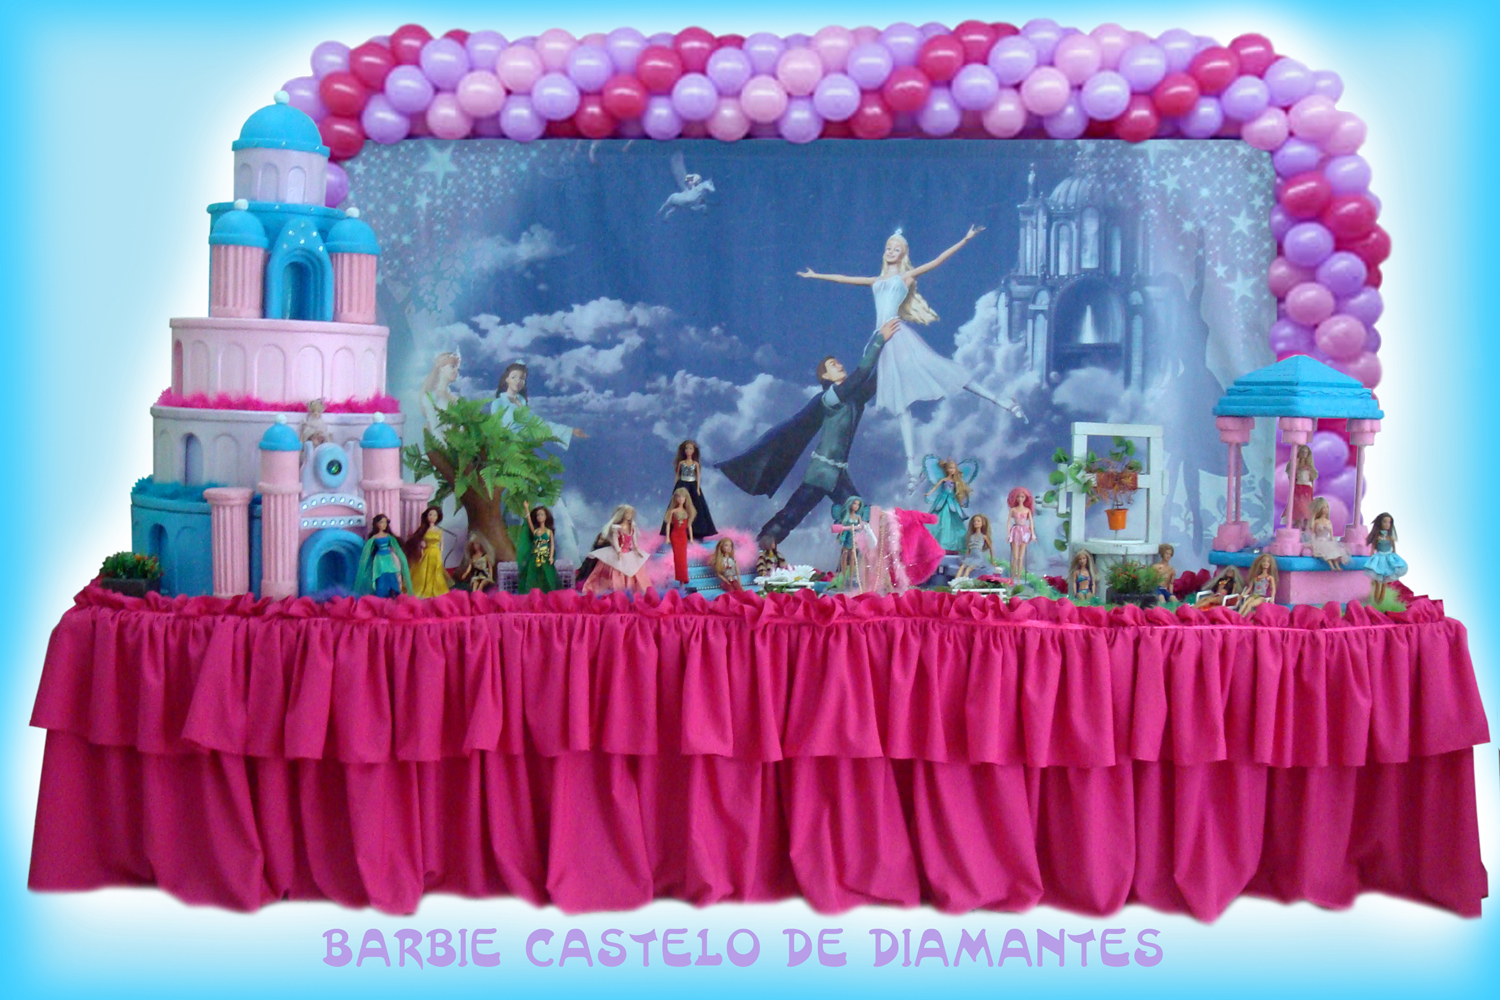 BARBIE CASTELO DIAMANTES